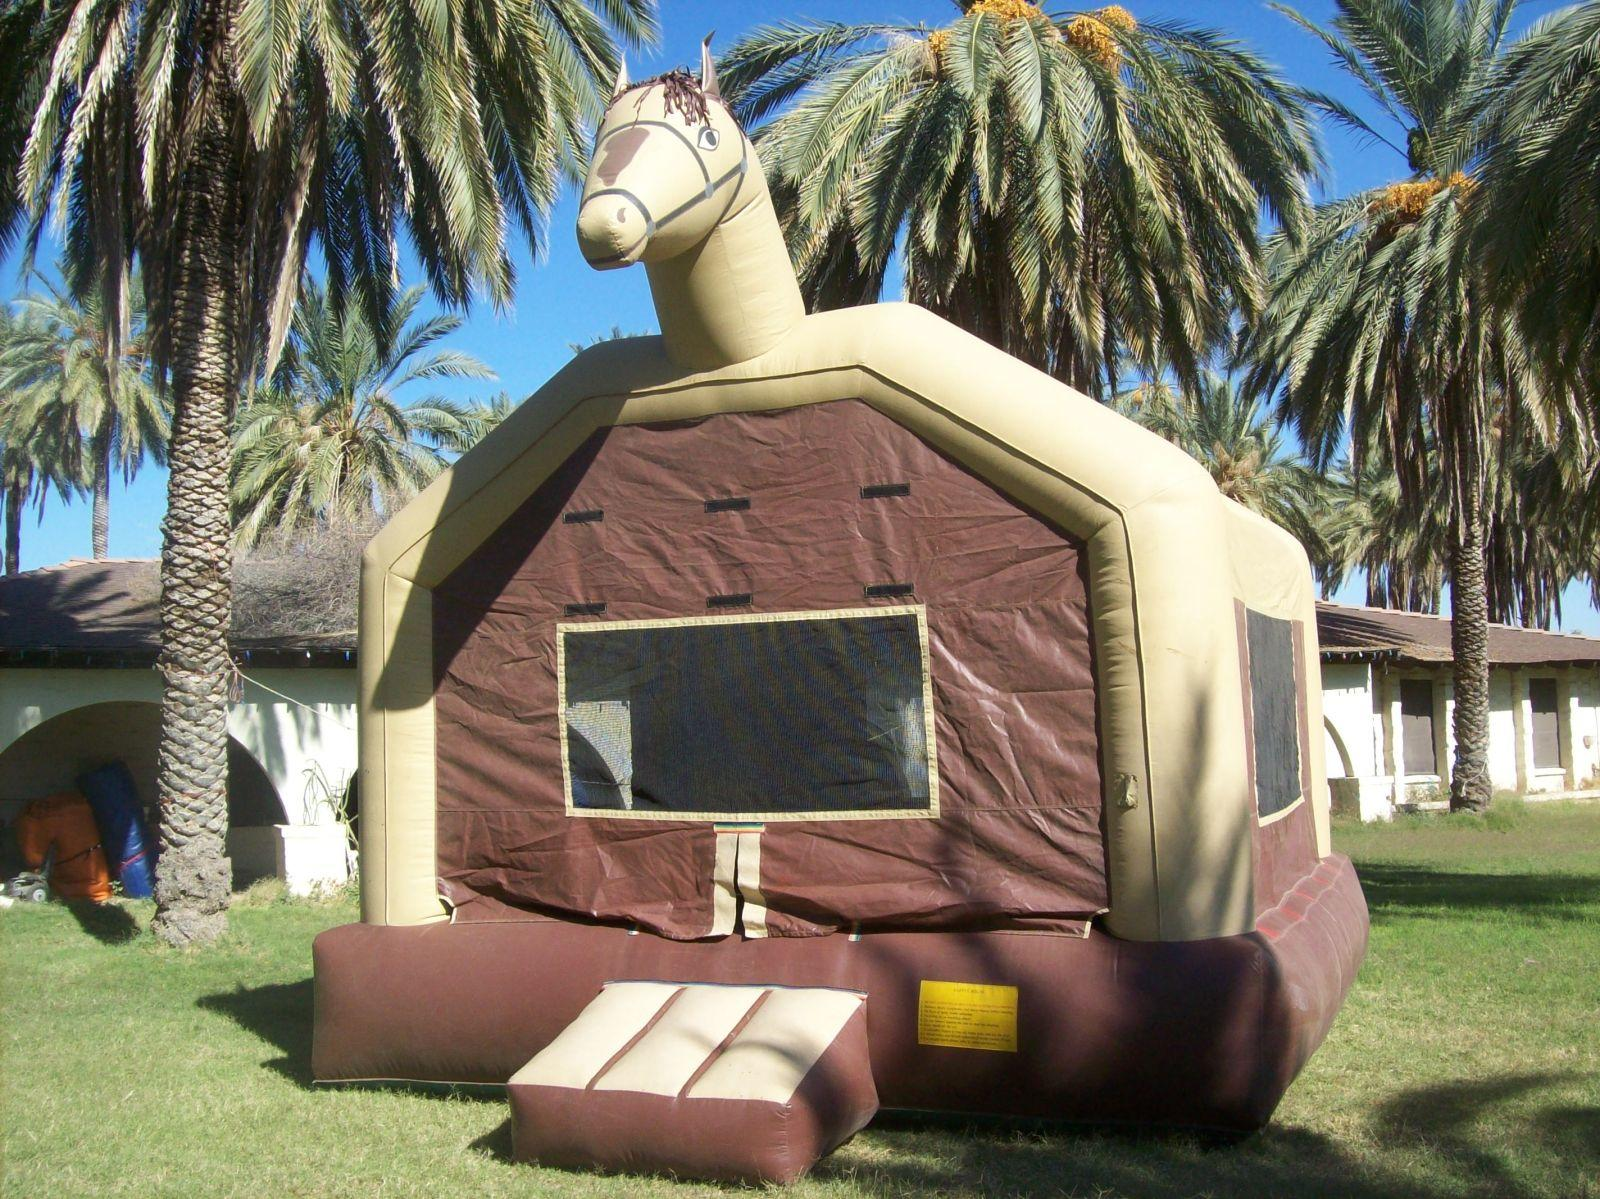 Giant Pony Bounce needs 20'x 20' area